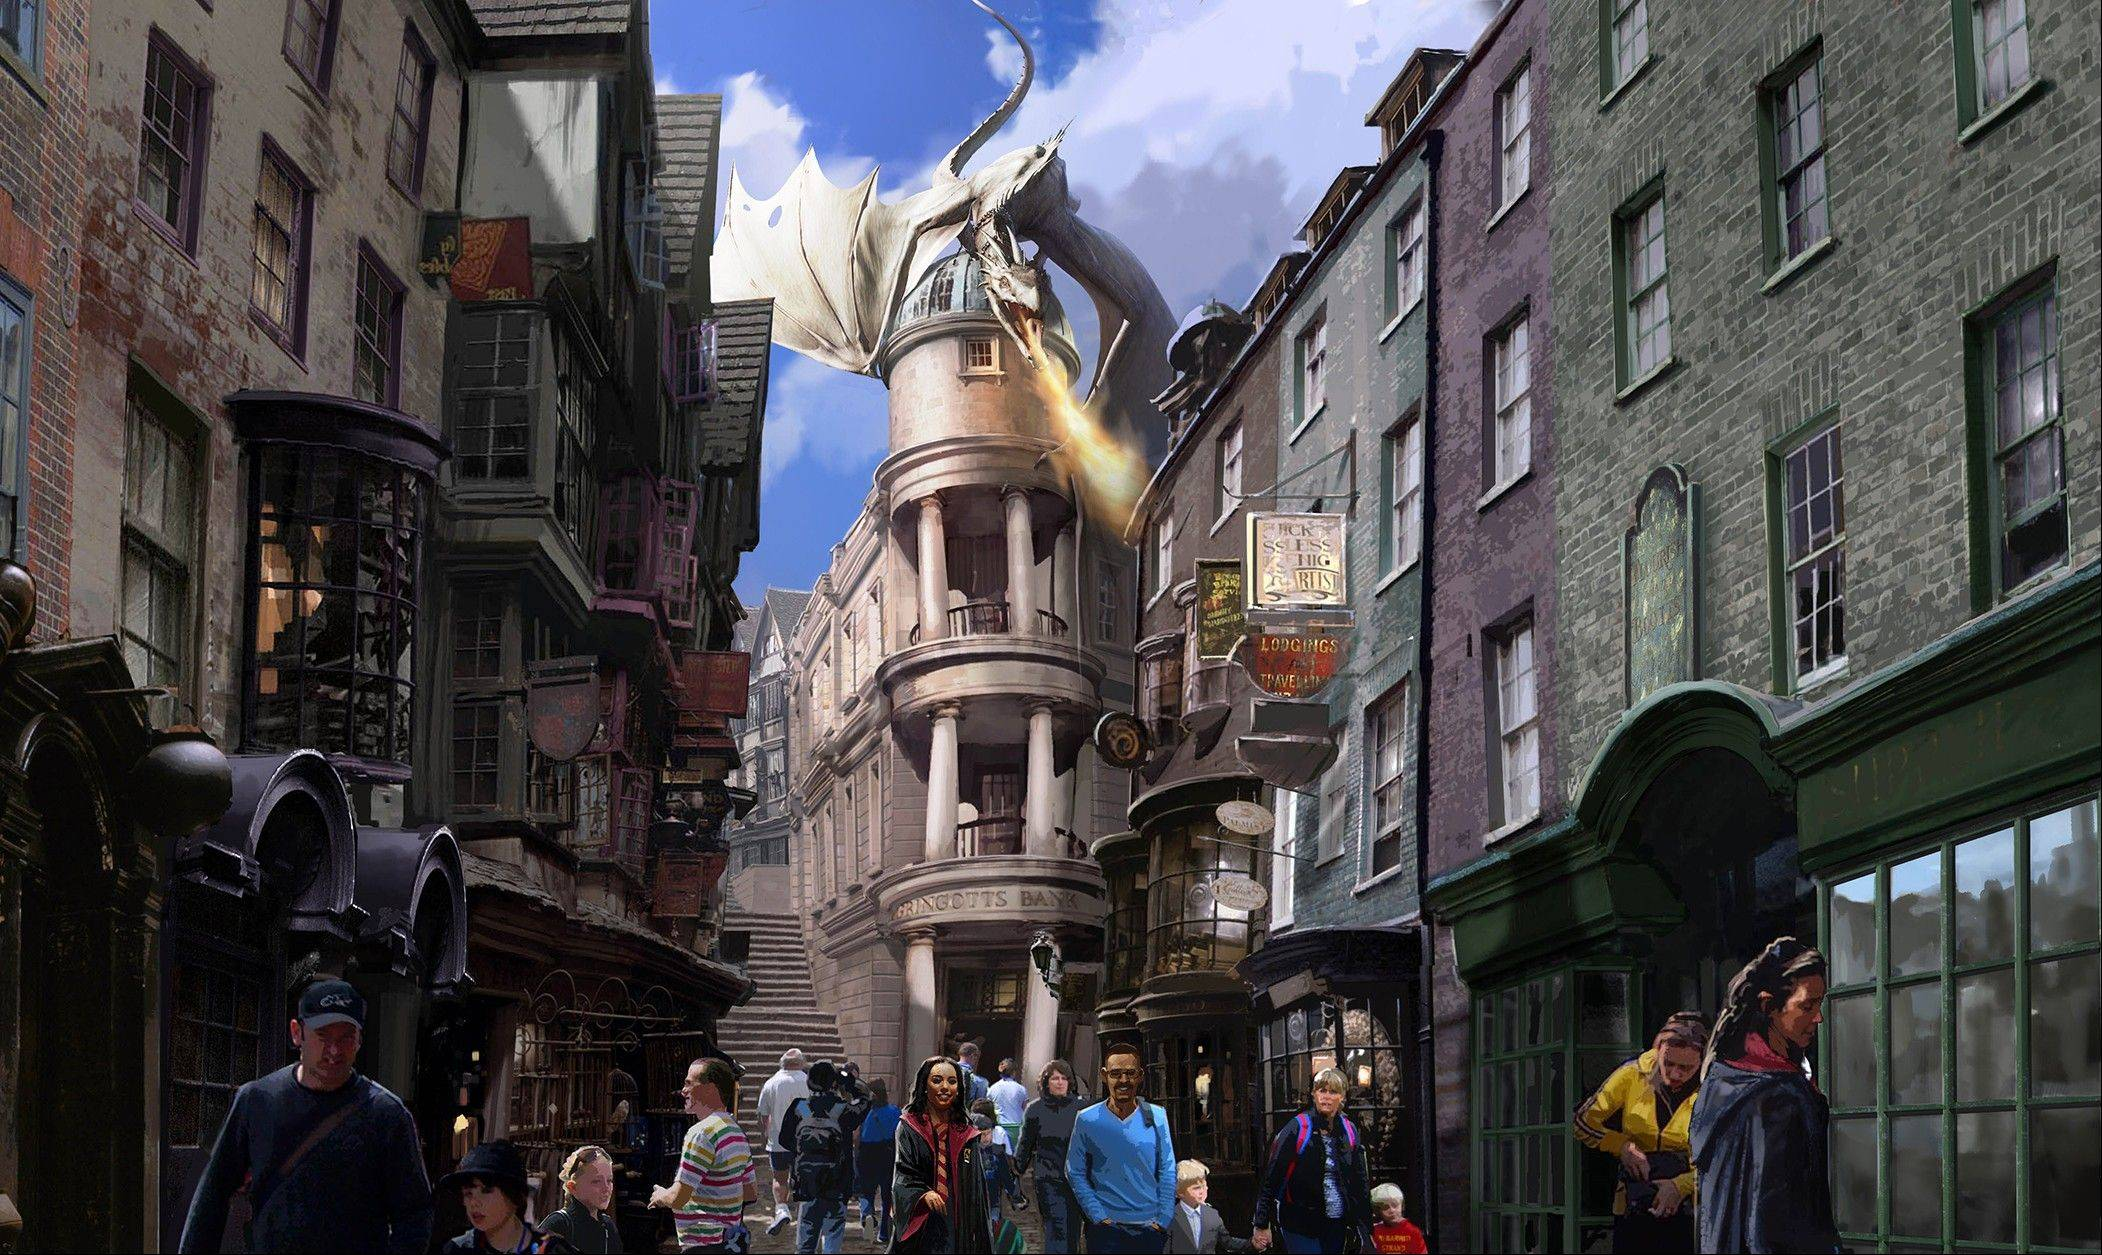 This artist rendering shows the new Harry Potter area called Diagon Alley, opening at Universal Orlando Resort this summer.